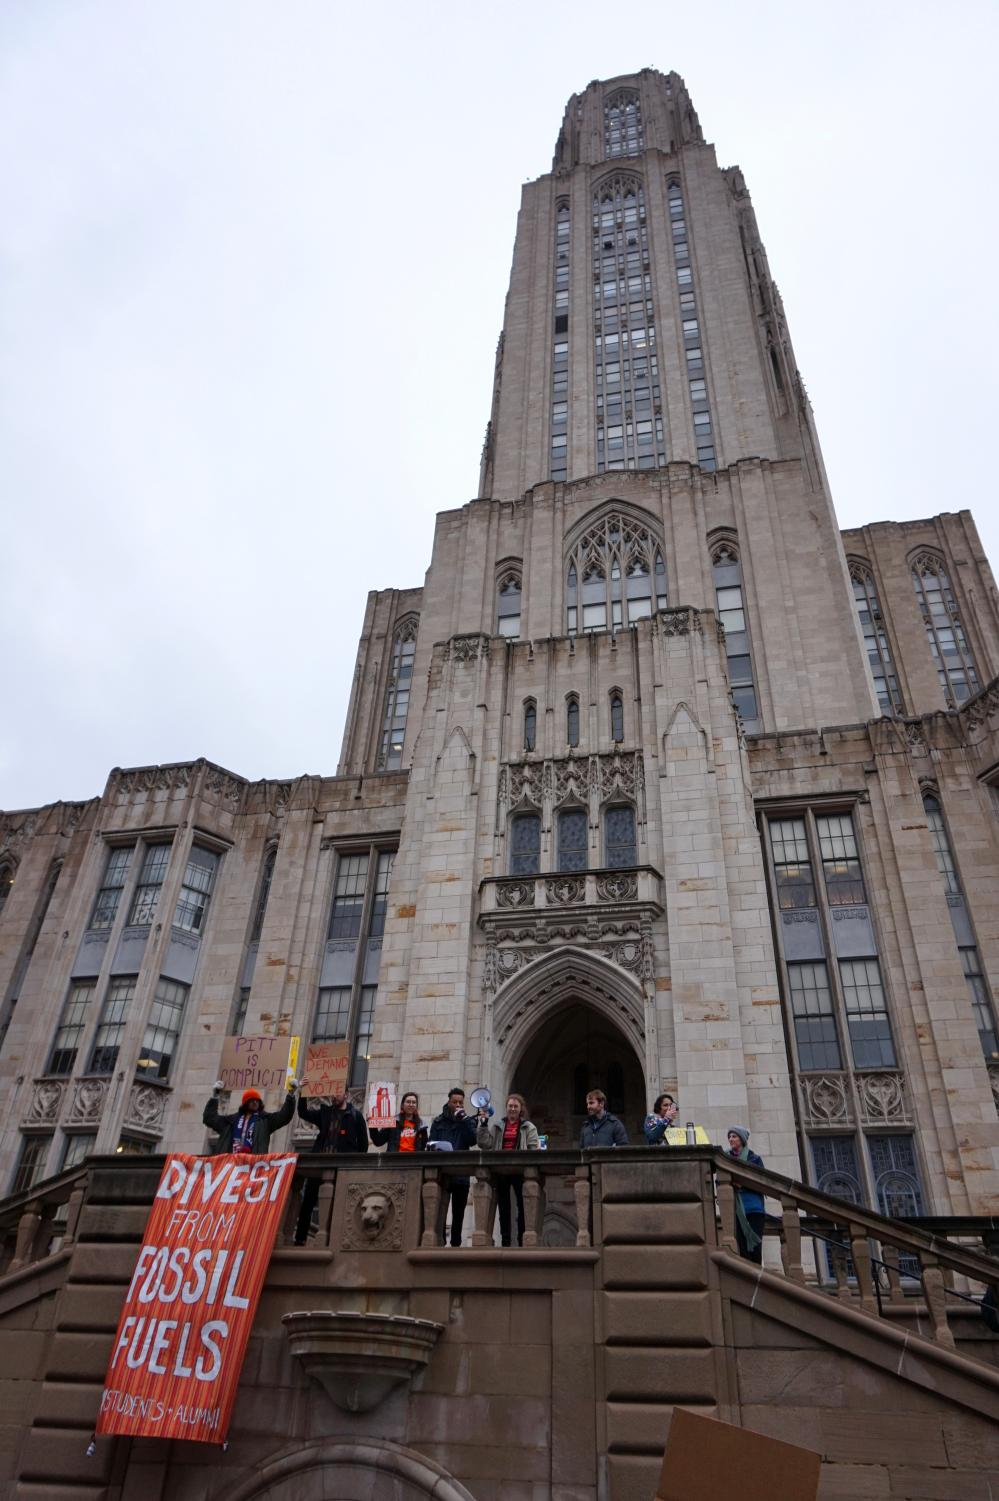 As a part of Fossil Fuel Divestment Day, a nationwide event that, according to the organizers, only marks the beginning of the 'mass escalation' of the divestment movement in 2020, Fossil Free Pitt held a rally outside the Cathedral of Learning Thursday.